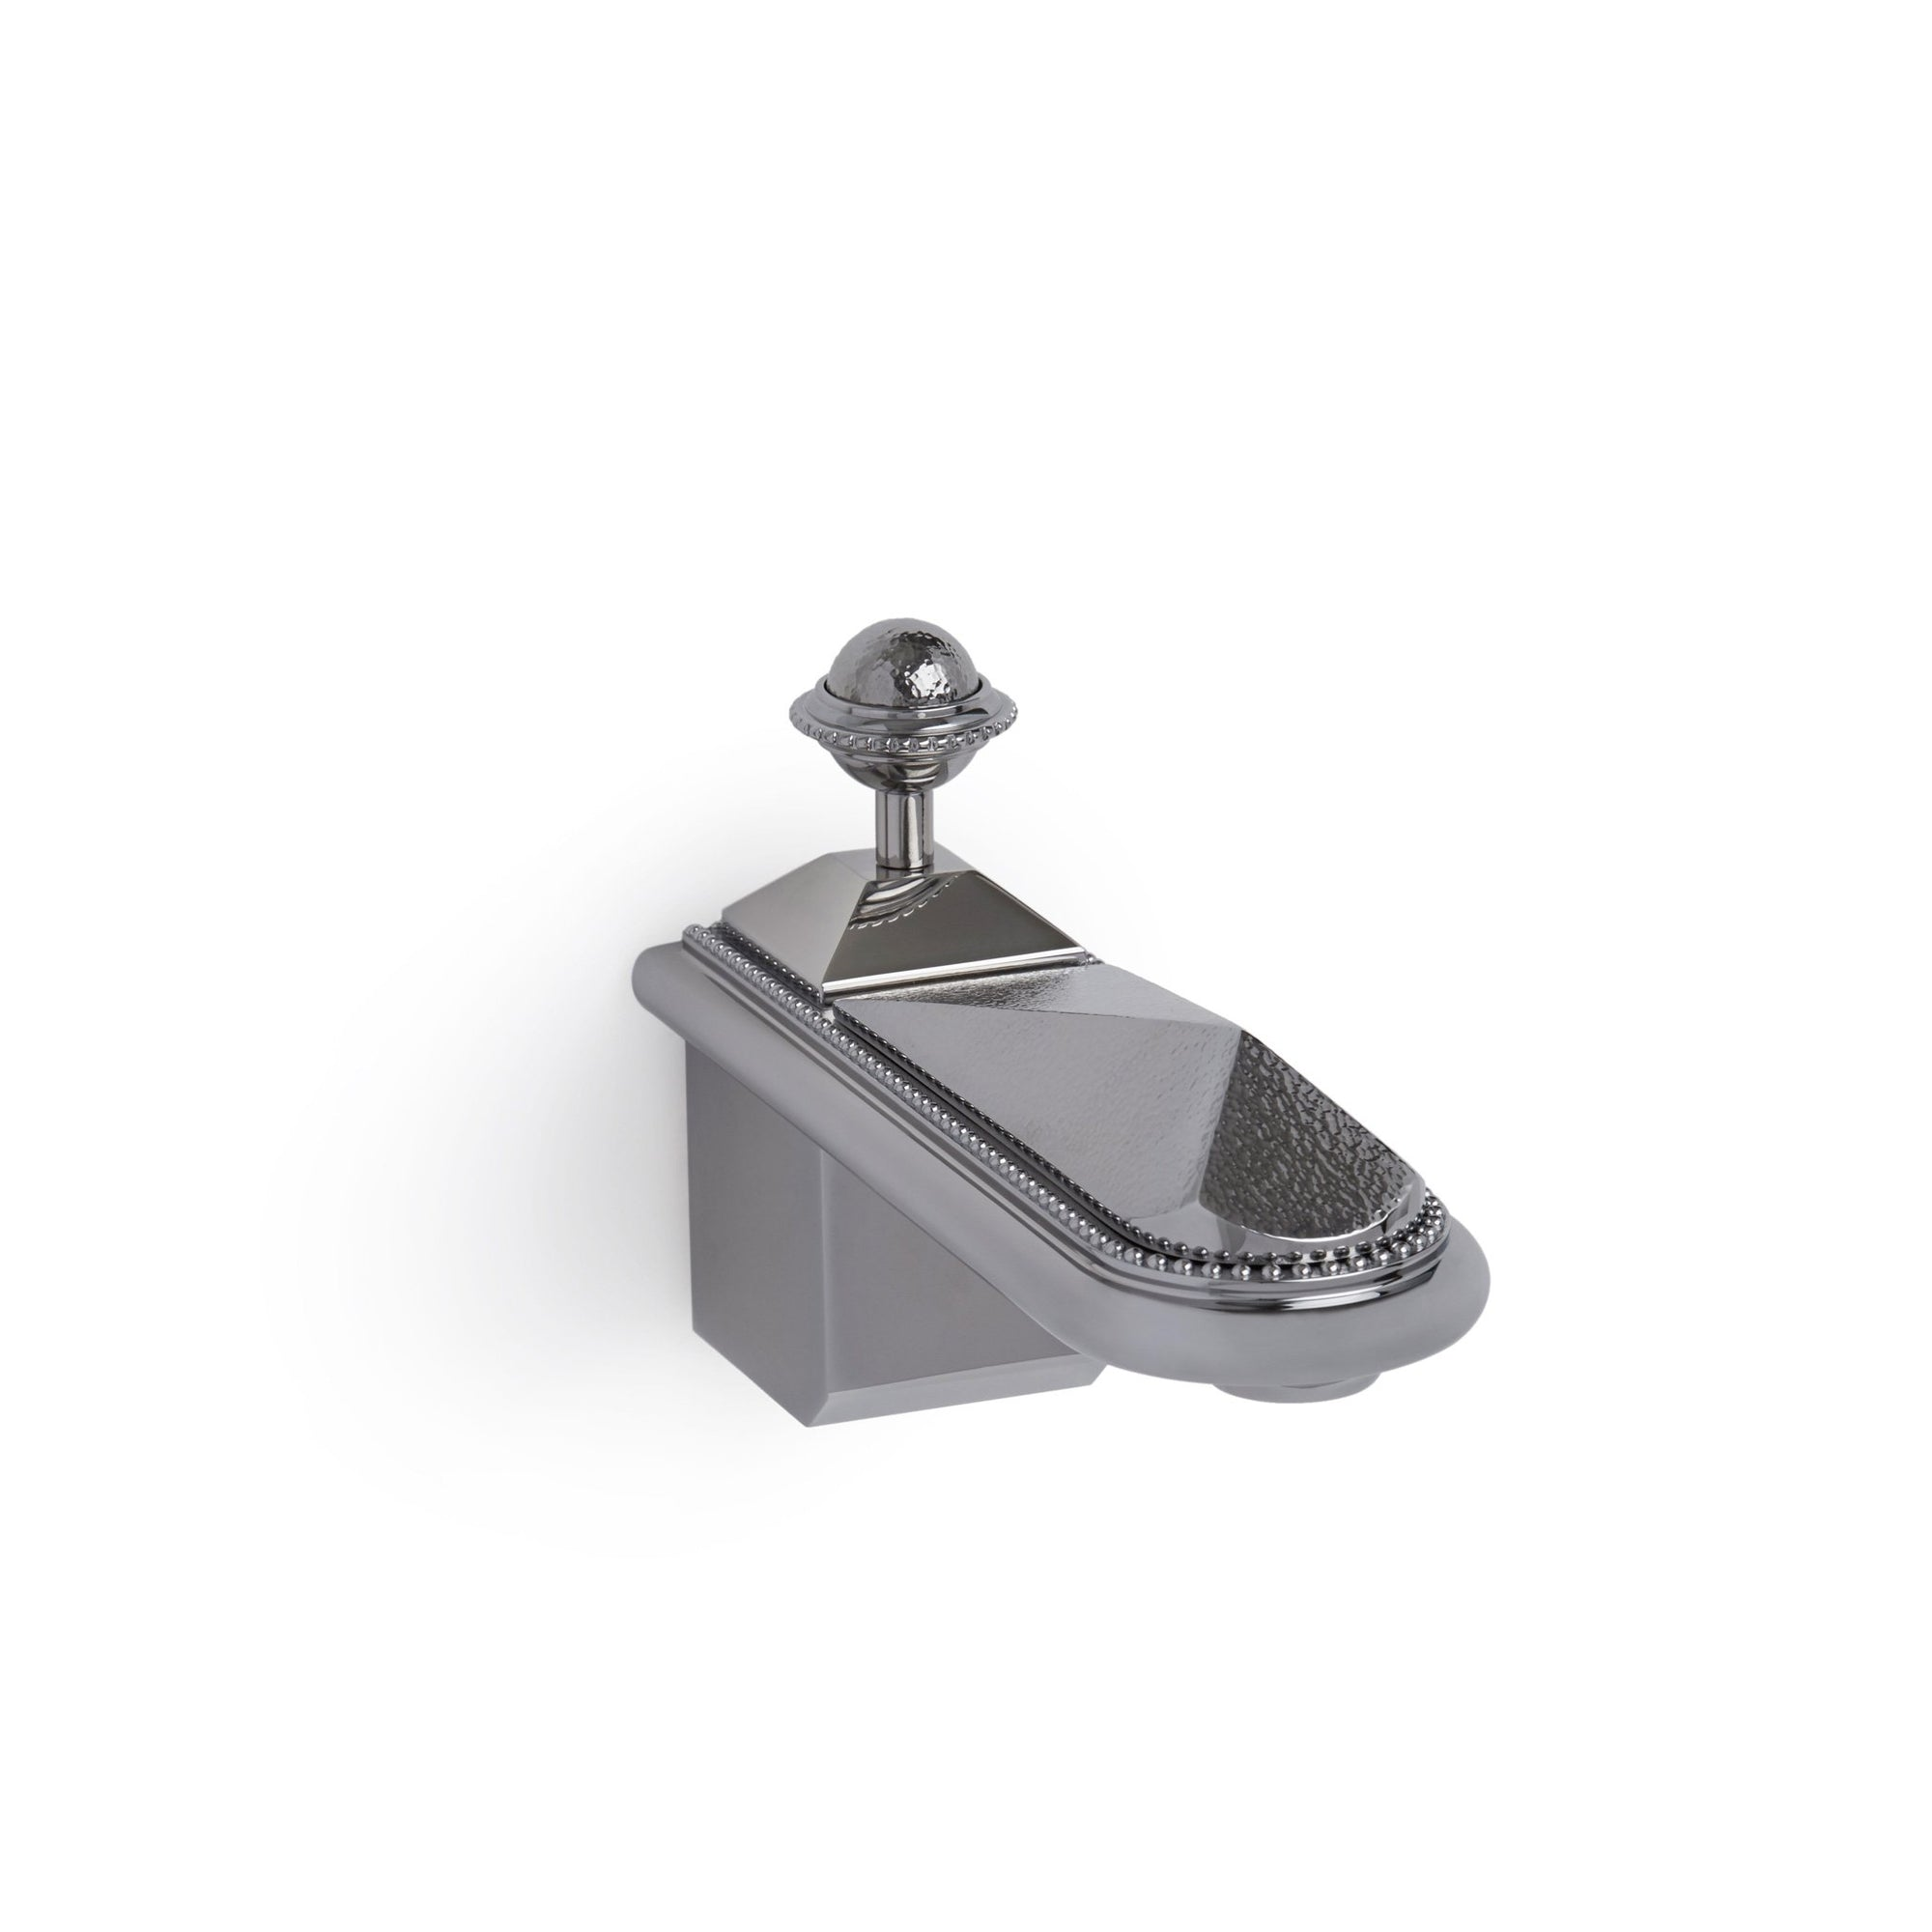 0803TUB-HMRD-CP Sherle Wagner International Hammered Pyramid Wall Mount Tub Spout in Polished Chrome metal finish